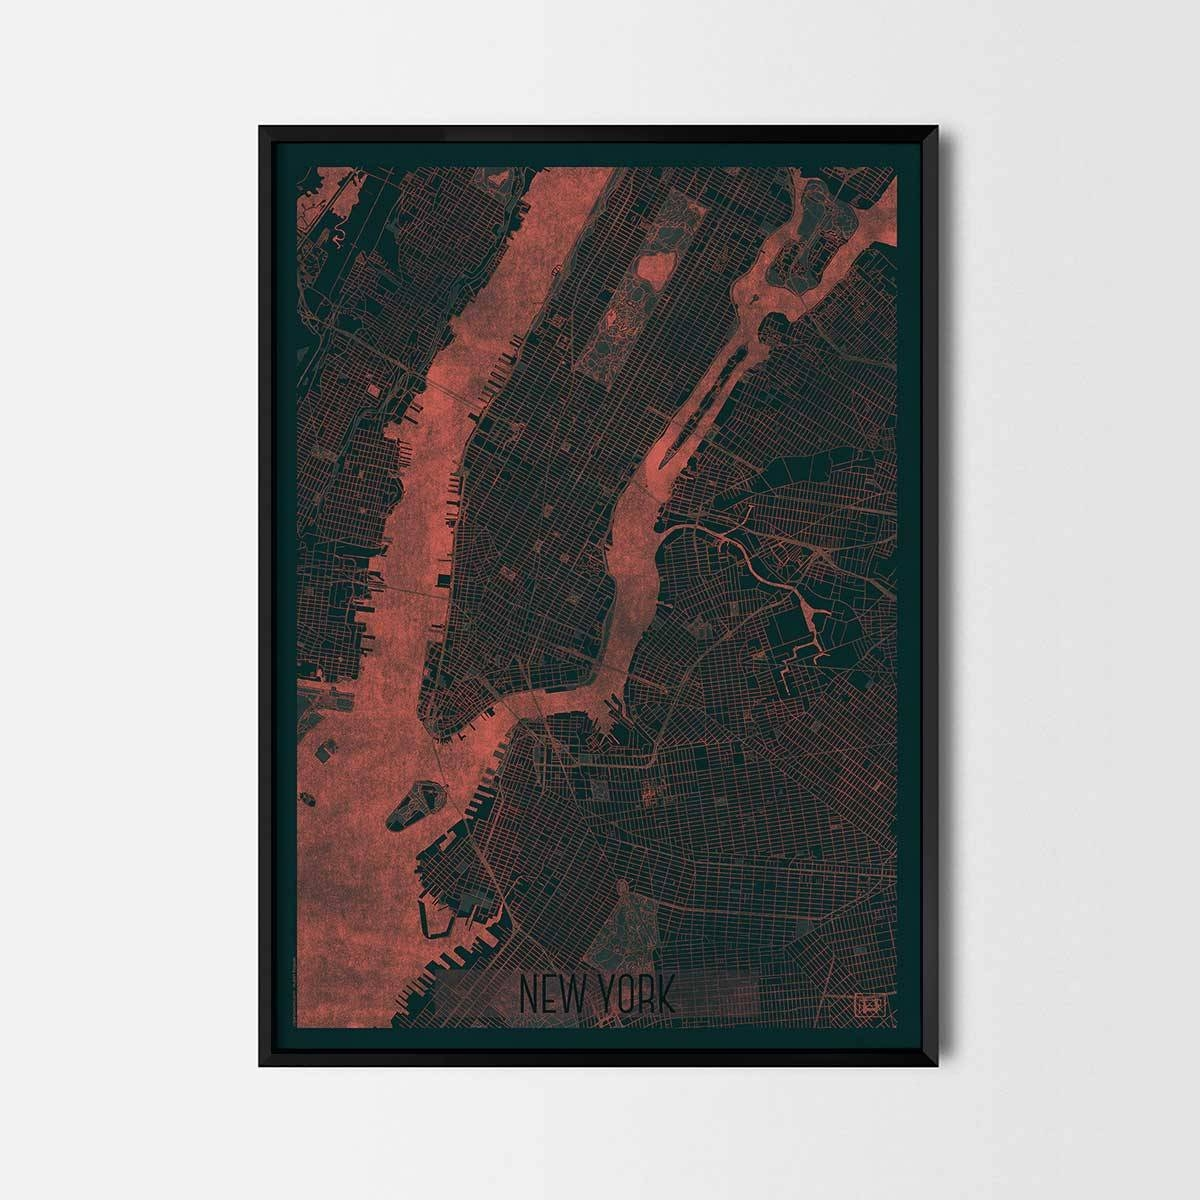 City Art Posters | Map Posters And Art Prints – Gifts For City With Most Current City Prints Map Wall Art (View 8 of 20)